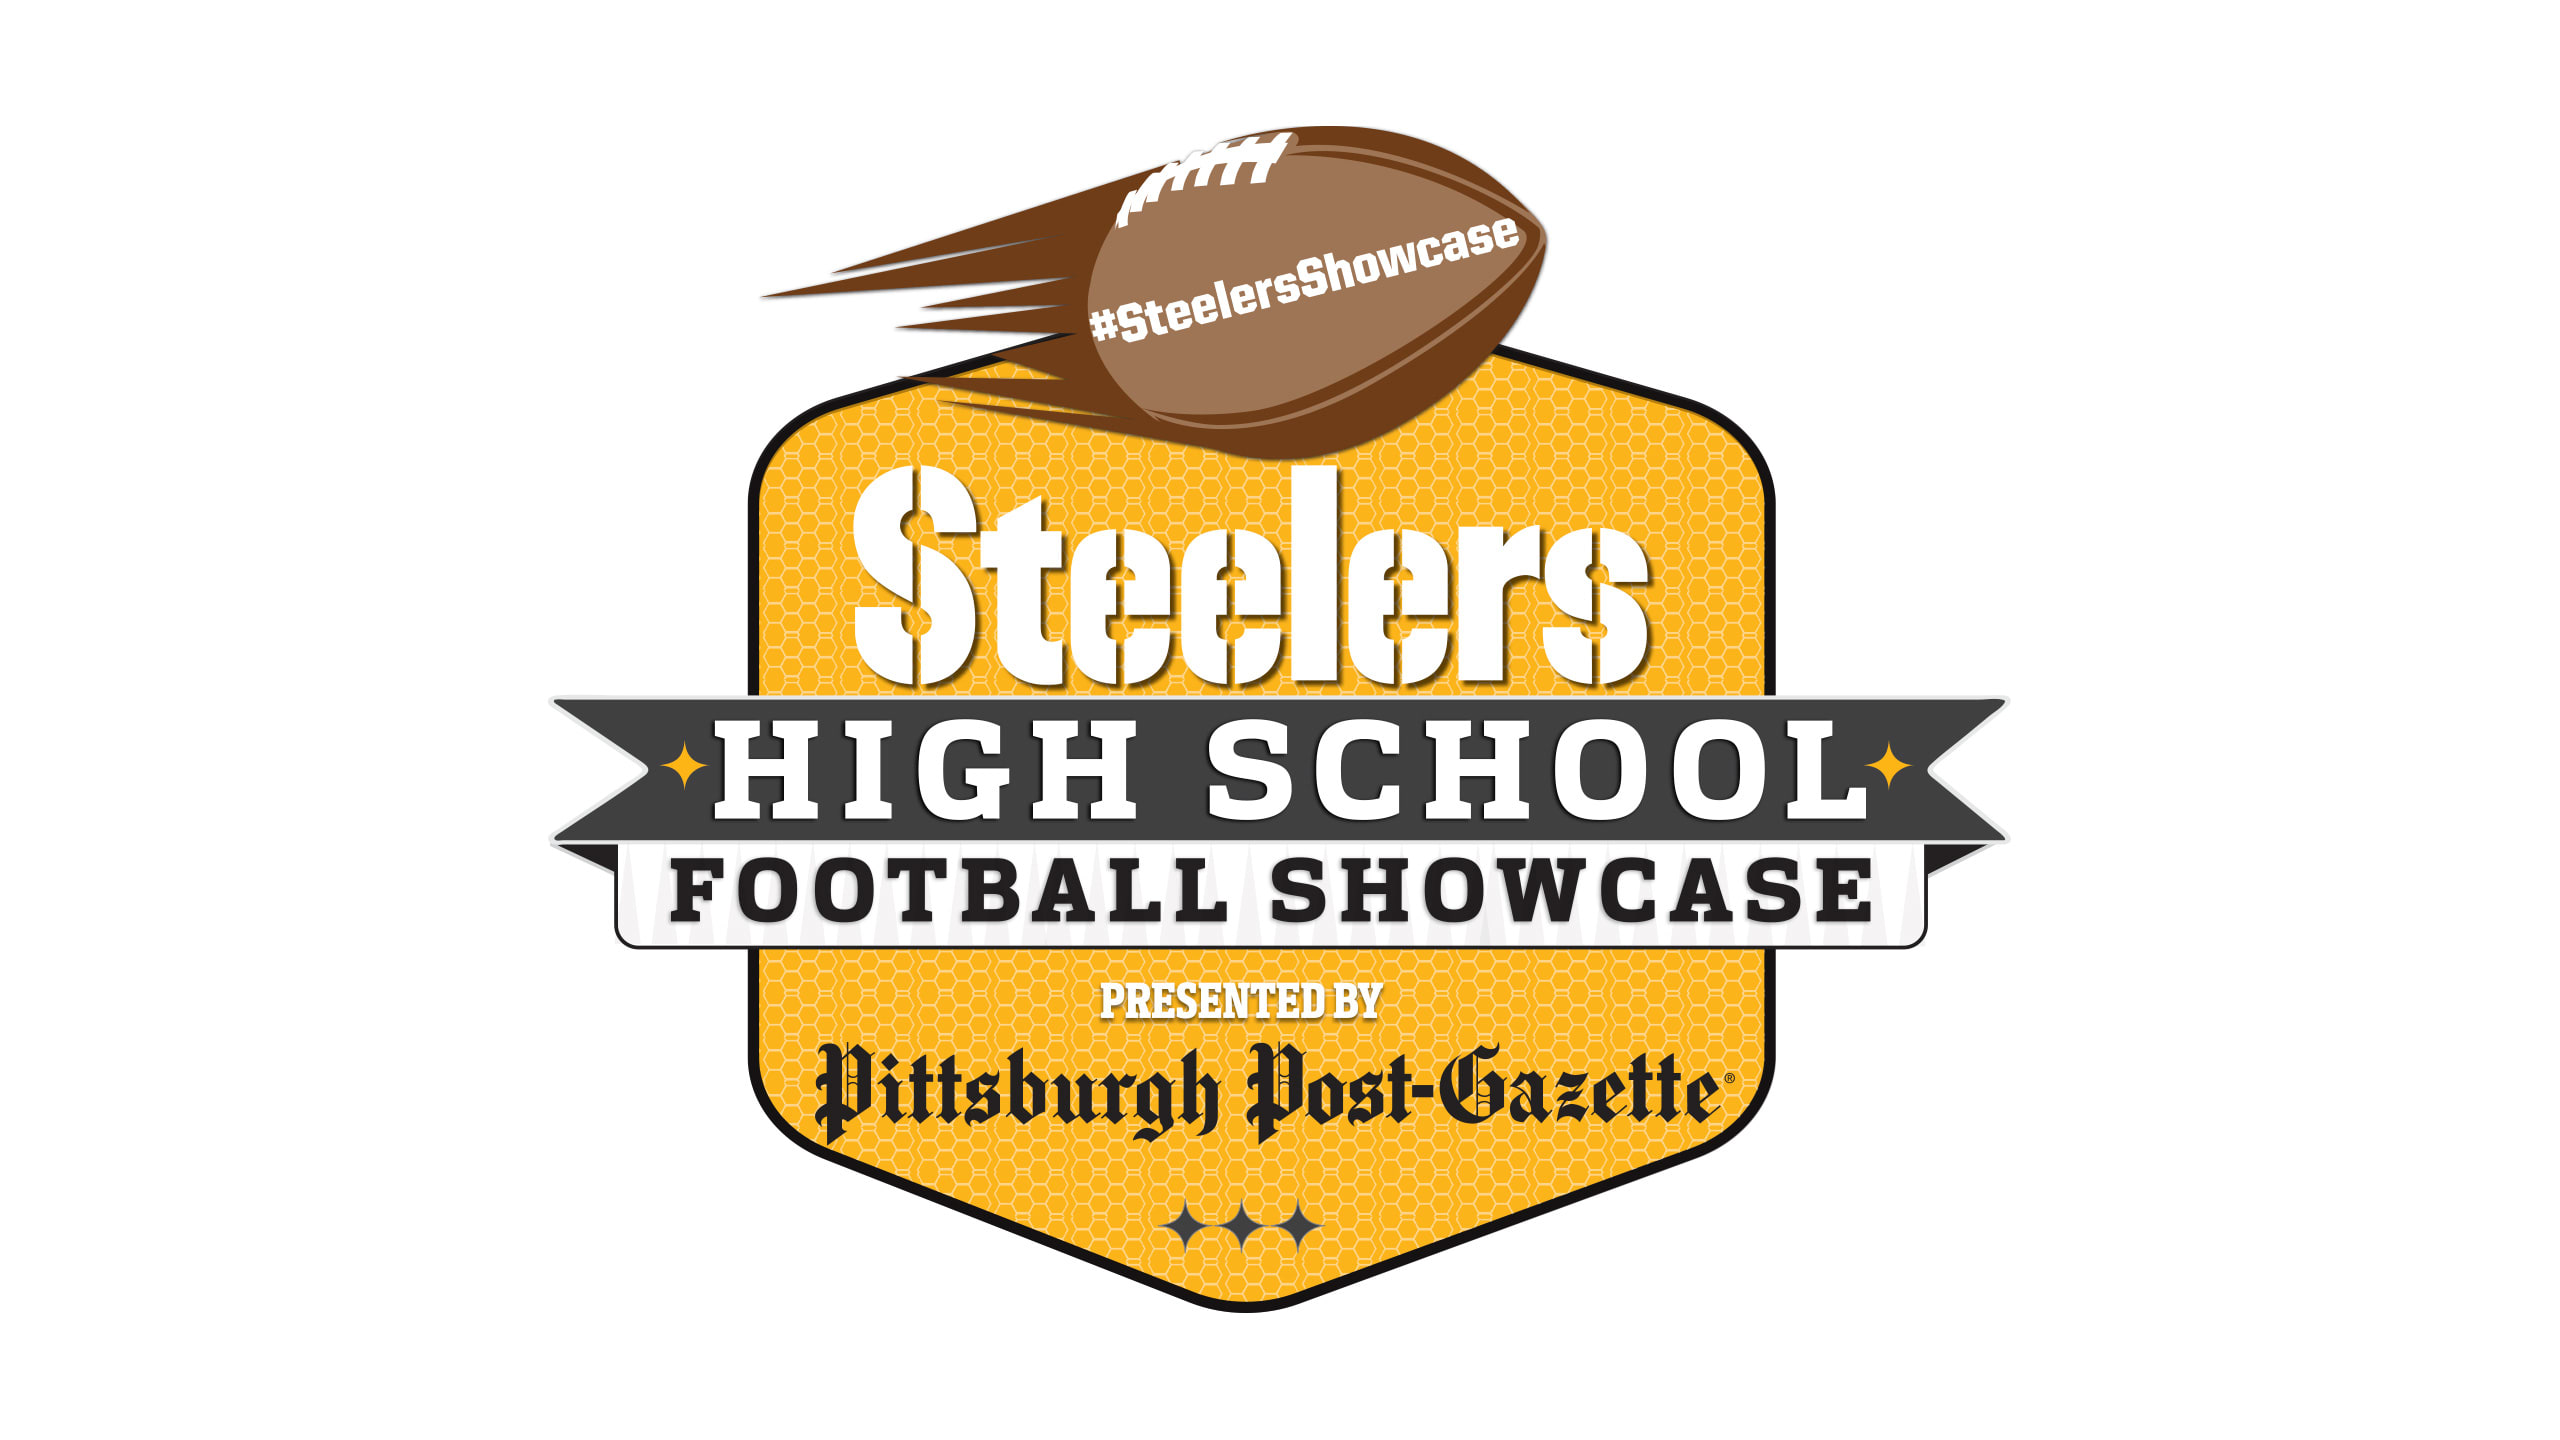 High School Football Showcase